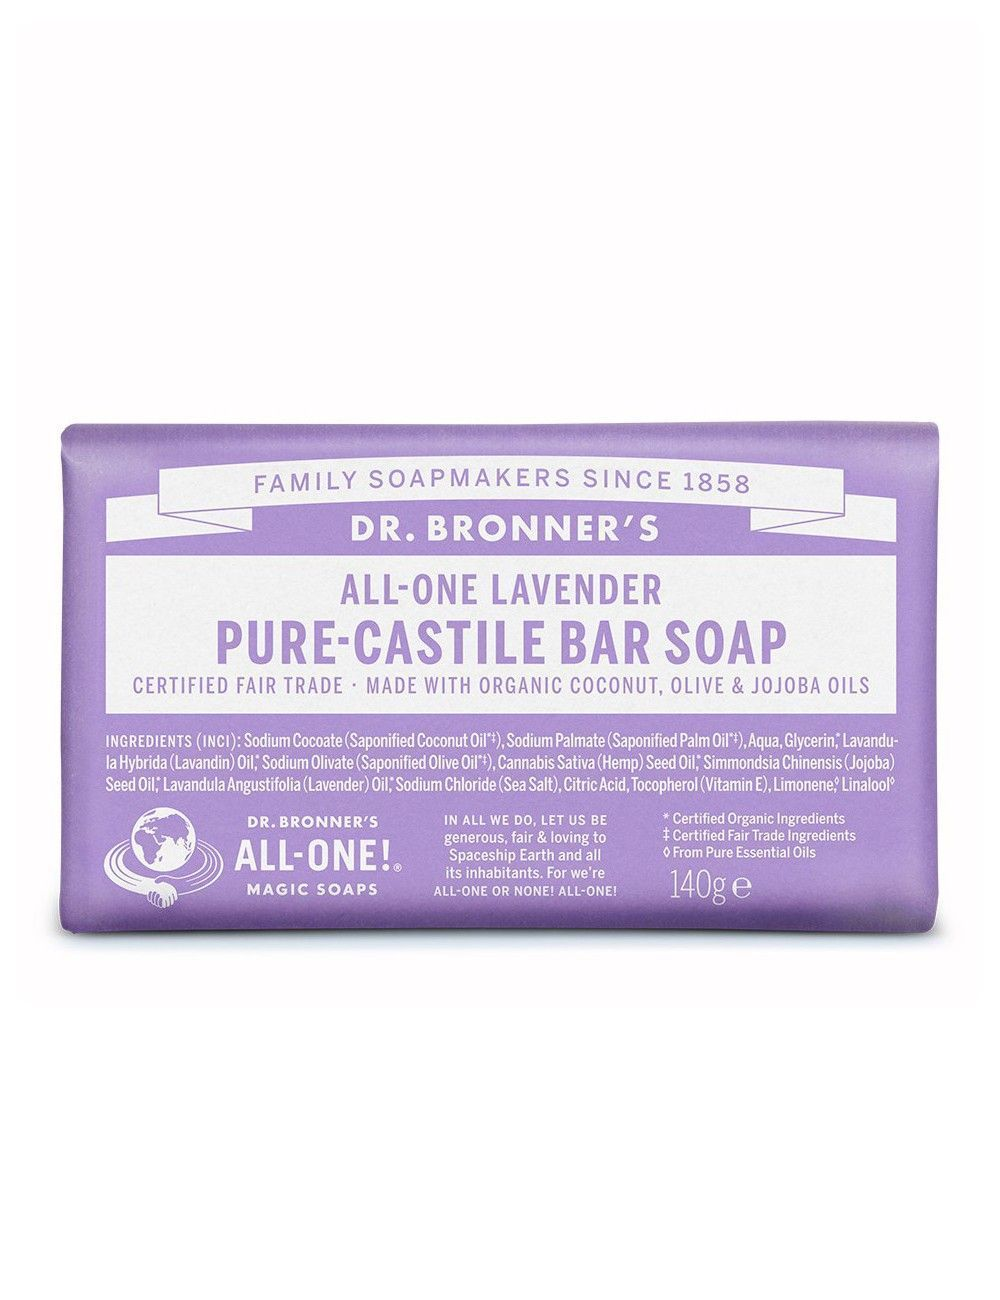 lavender castile bar soap